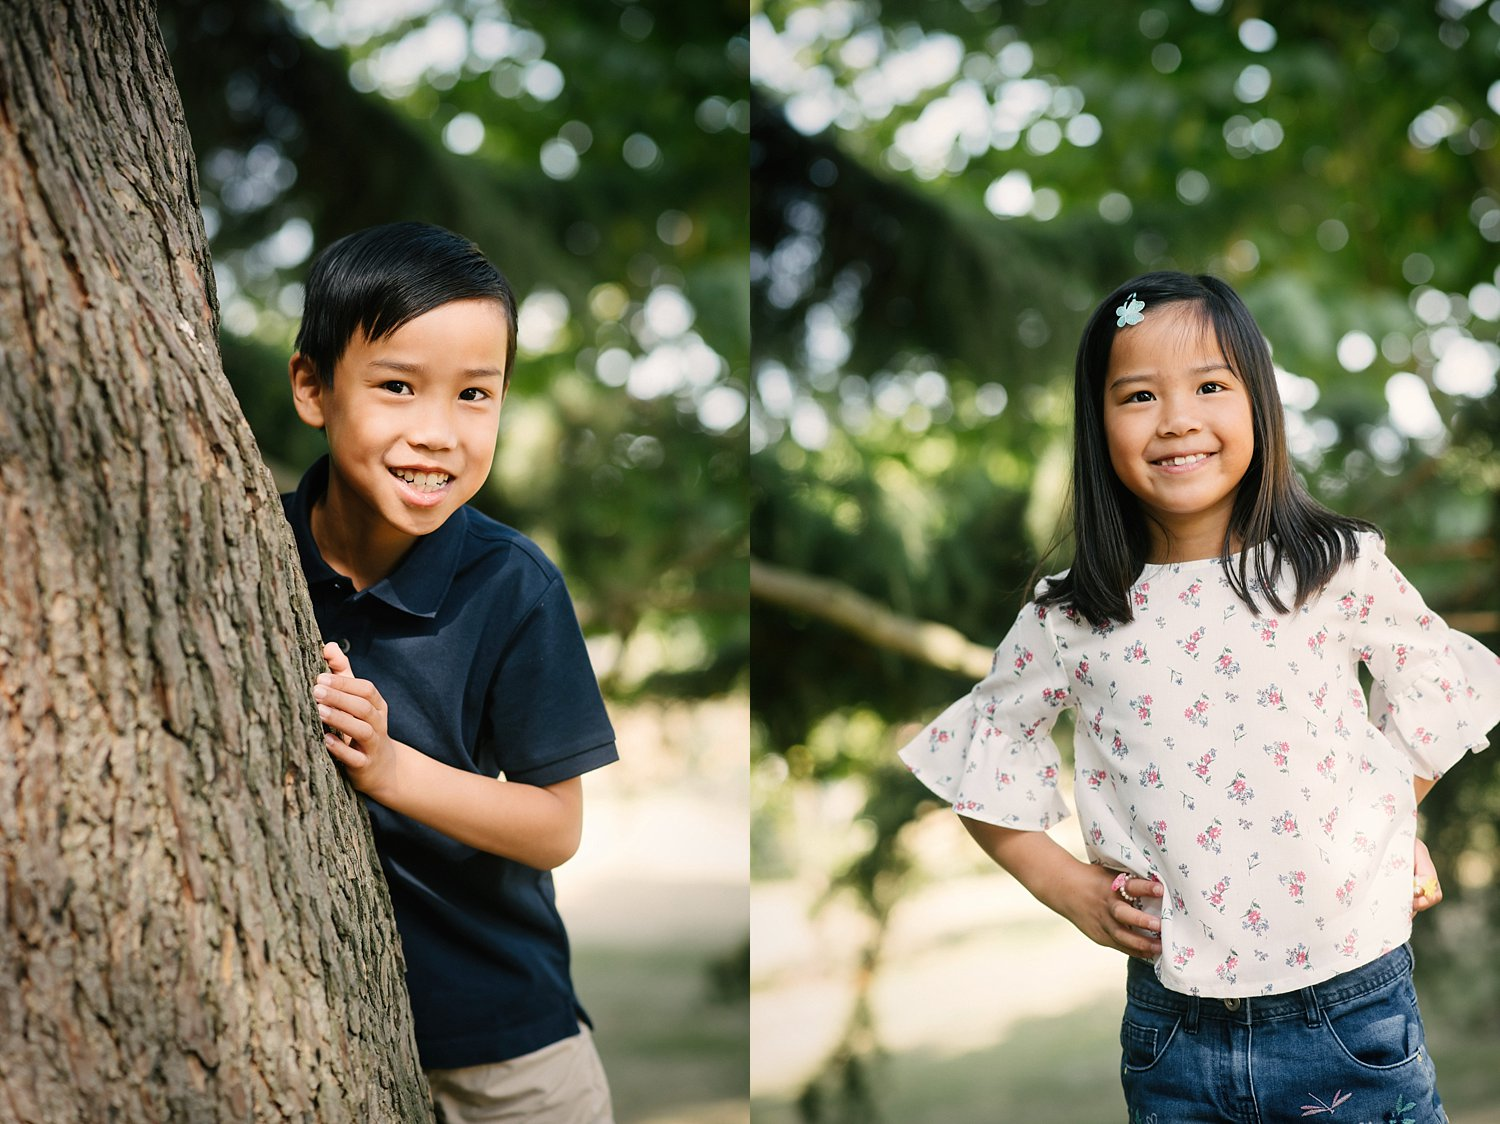 6 Types of Portrait Backgrounds You Can Use for Your Images - kids photos by trees